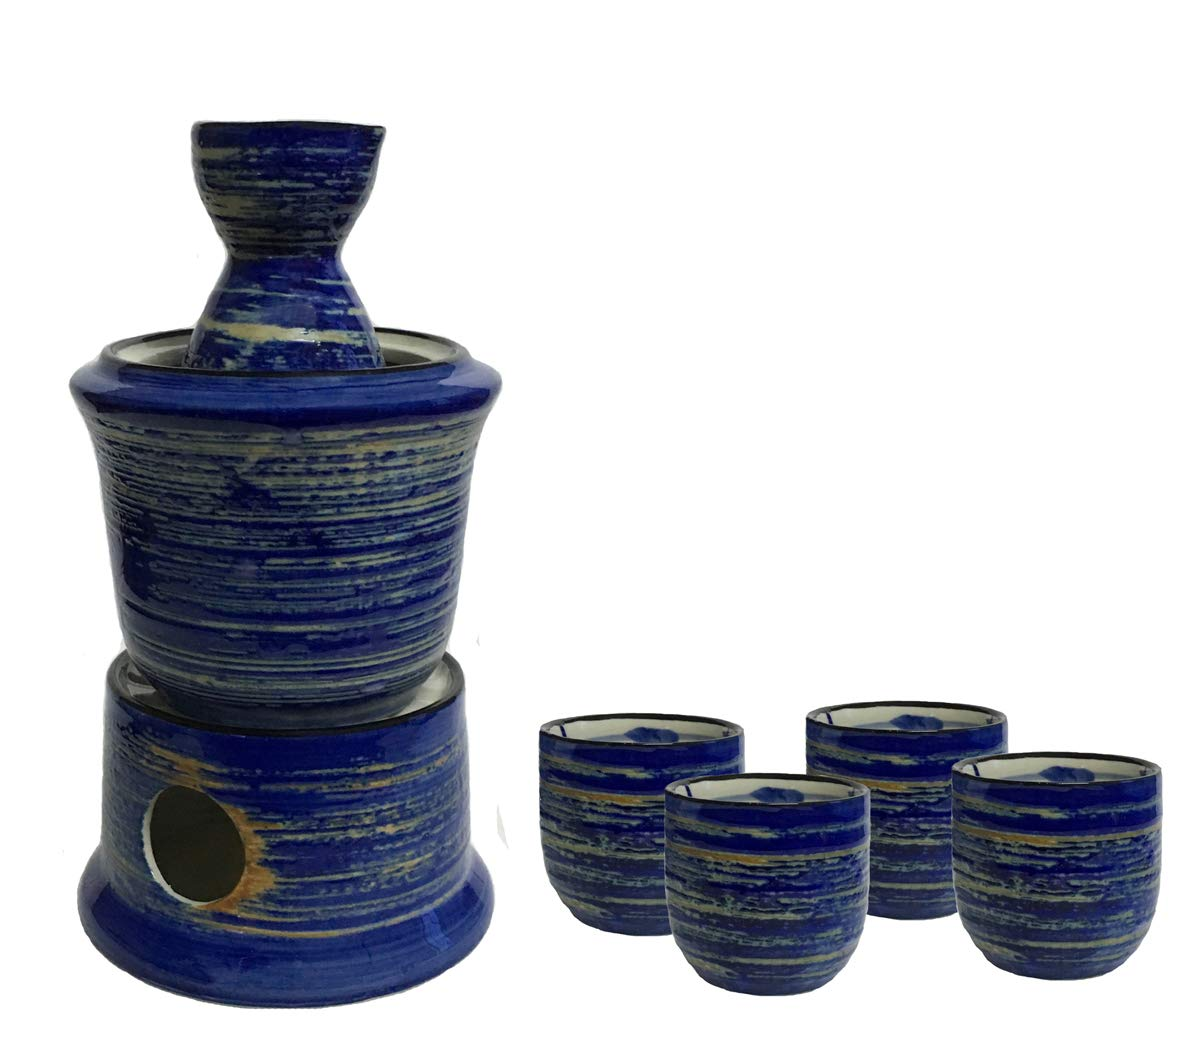 KCHAIN Ceramic Sake Warmer Set with 4pc Sake Cups, 1pc Sake Bottle, 1pc Warmer Pot, 1pc Heating Pot